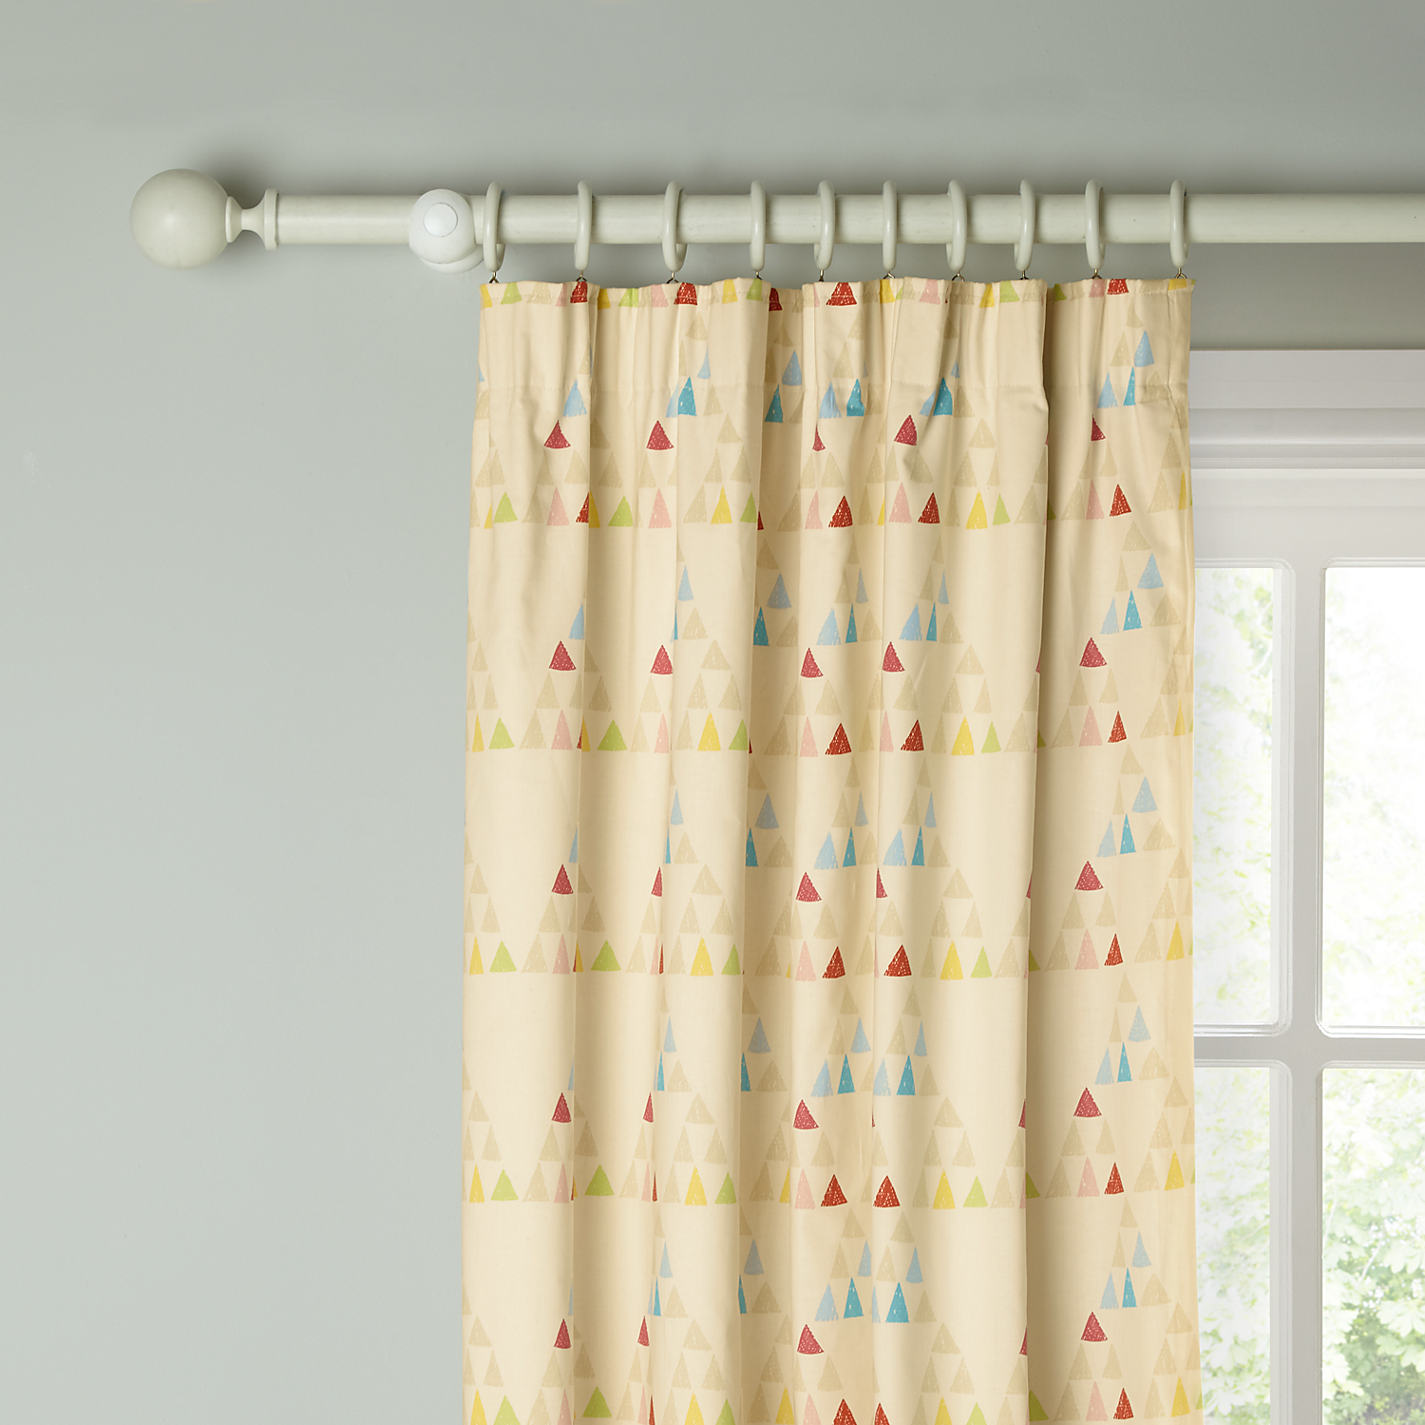 How To Make Cafe Curtains Pencil Pleat Curtains